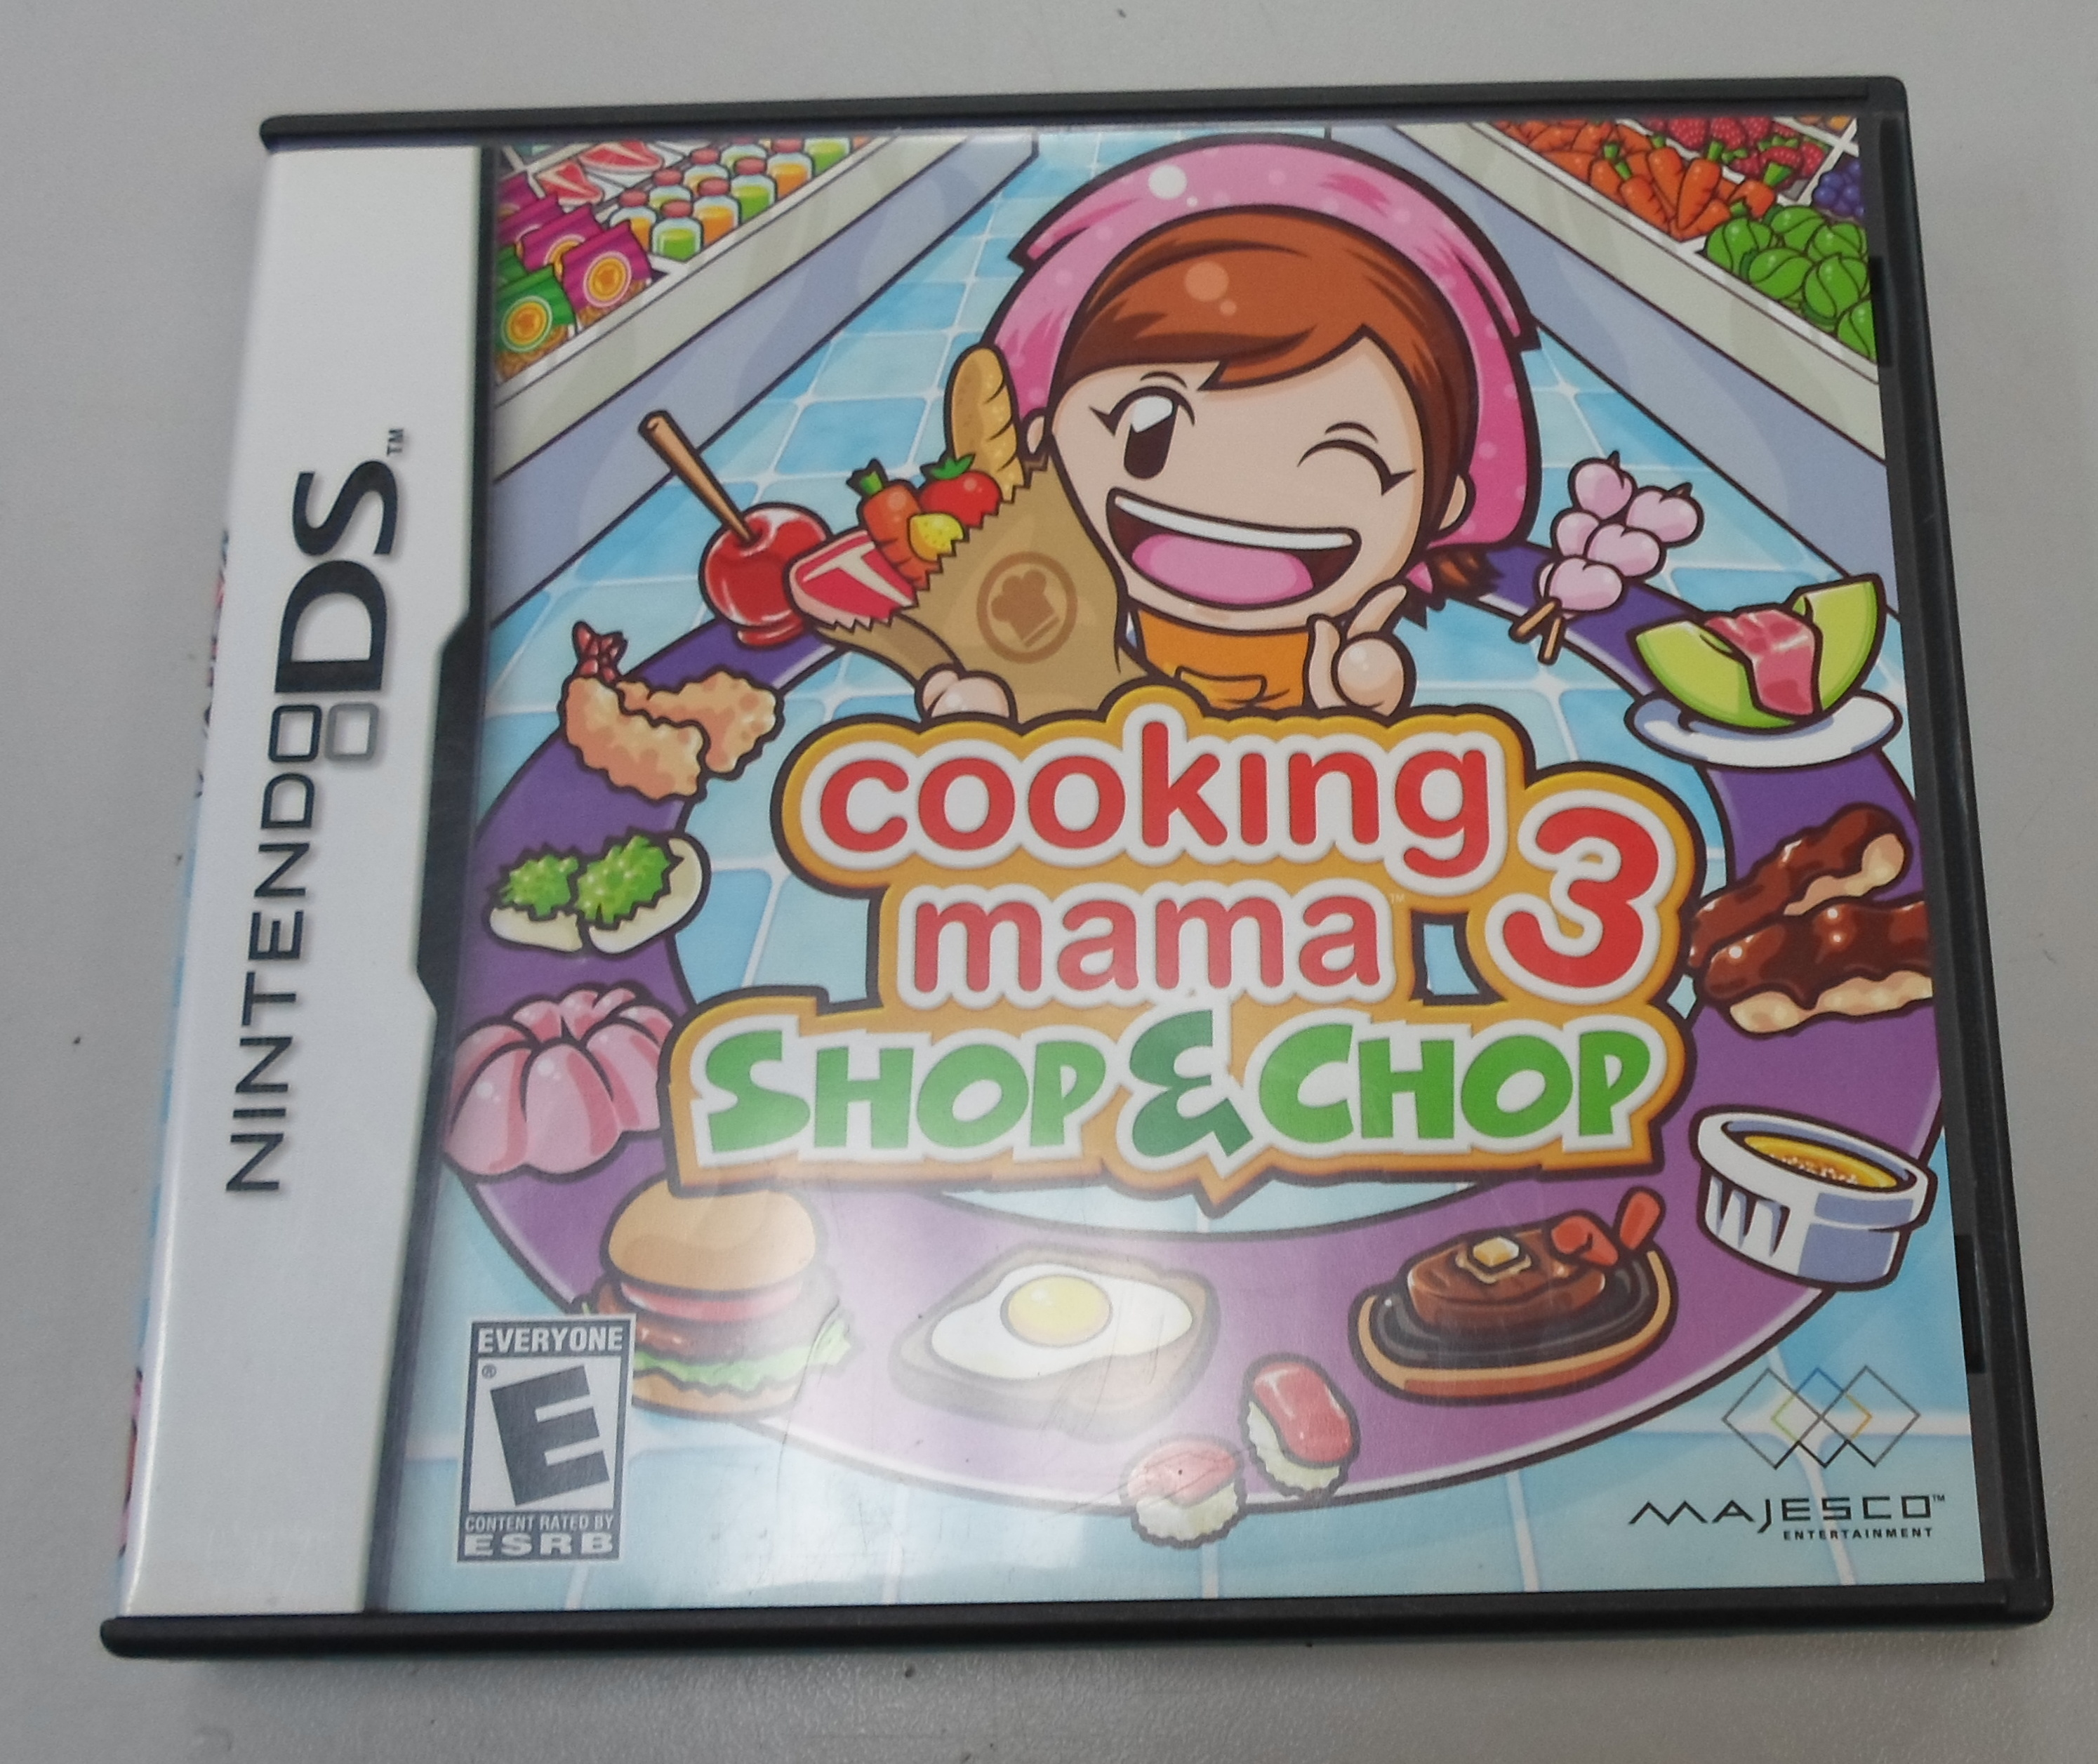 COOKING MAMA 3: SHOP & CHOP  - DS GAME